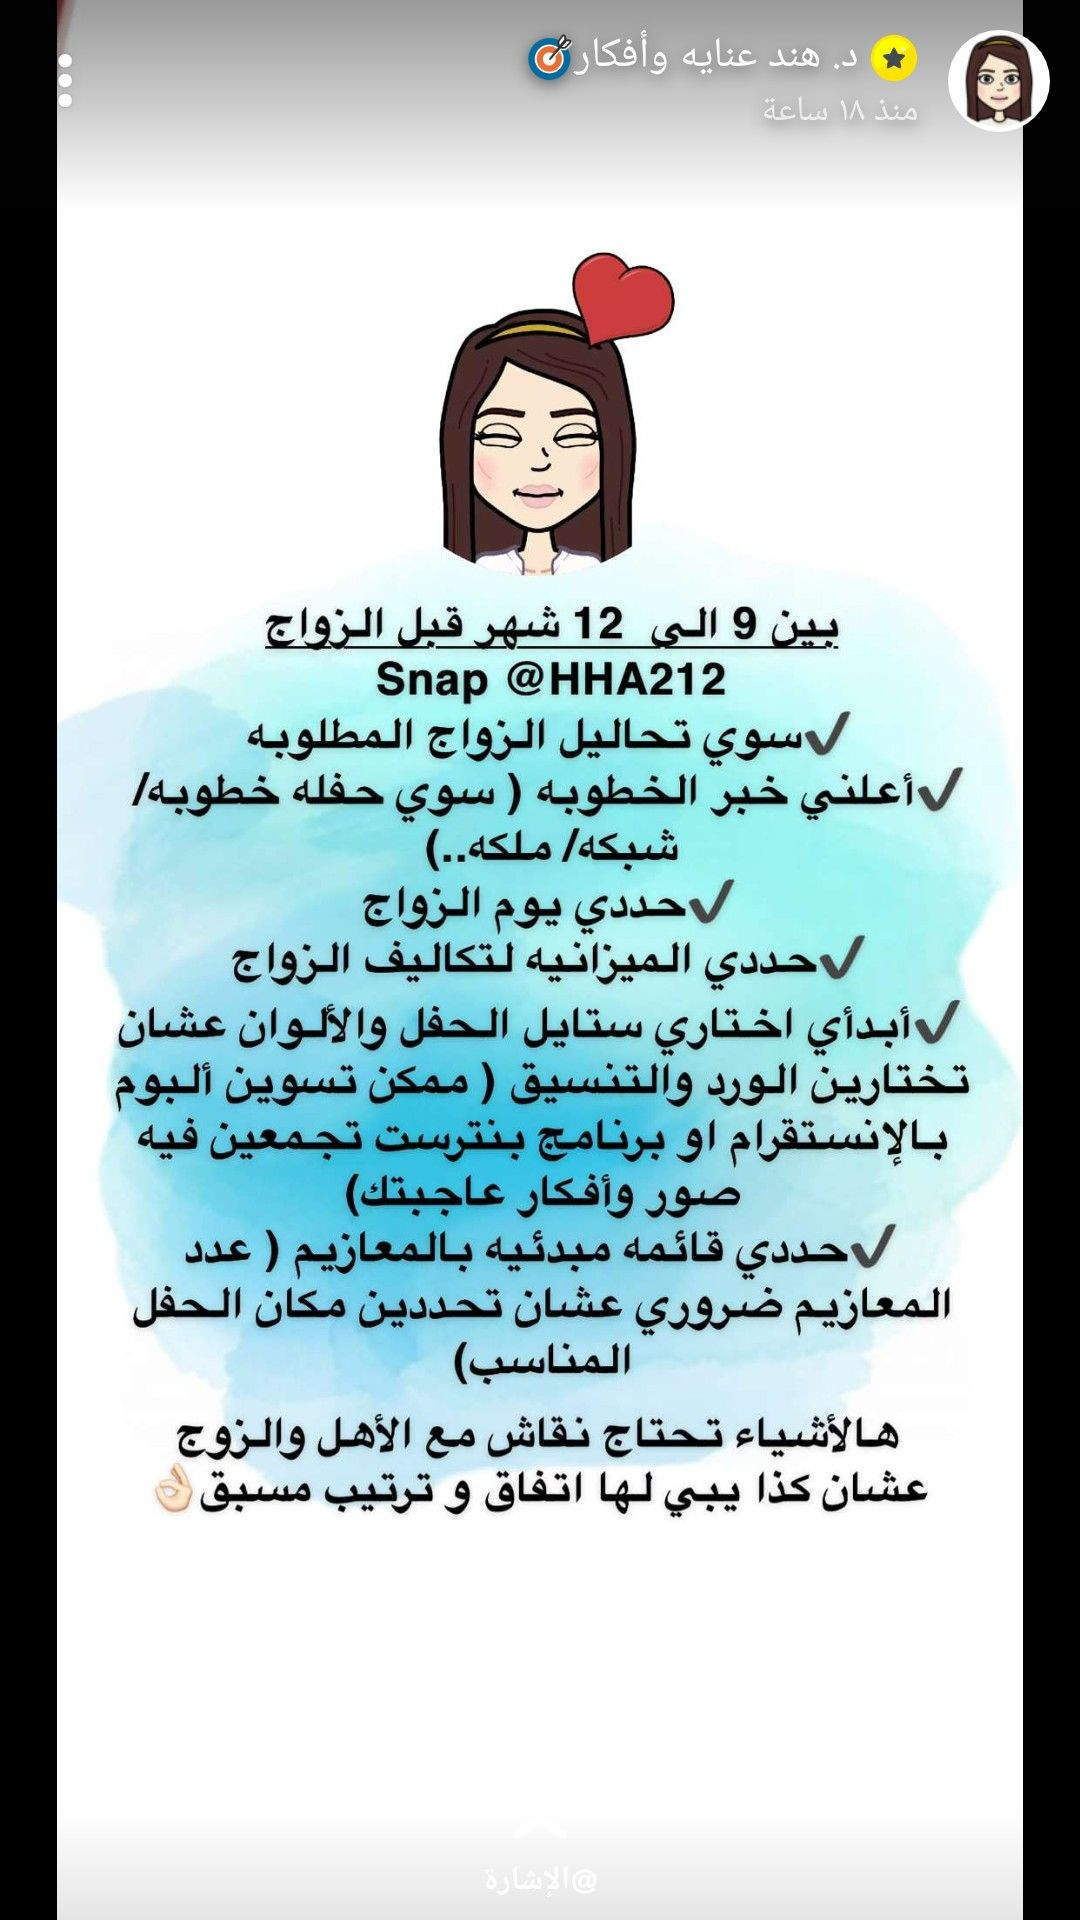 Pin By Hala Ahmed On د هند عنايه وافكار Married Advice Letter To Future Self Bride Preparation